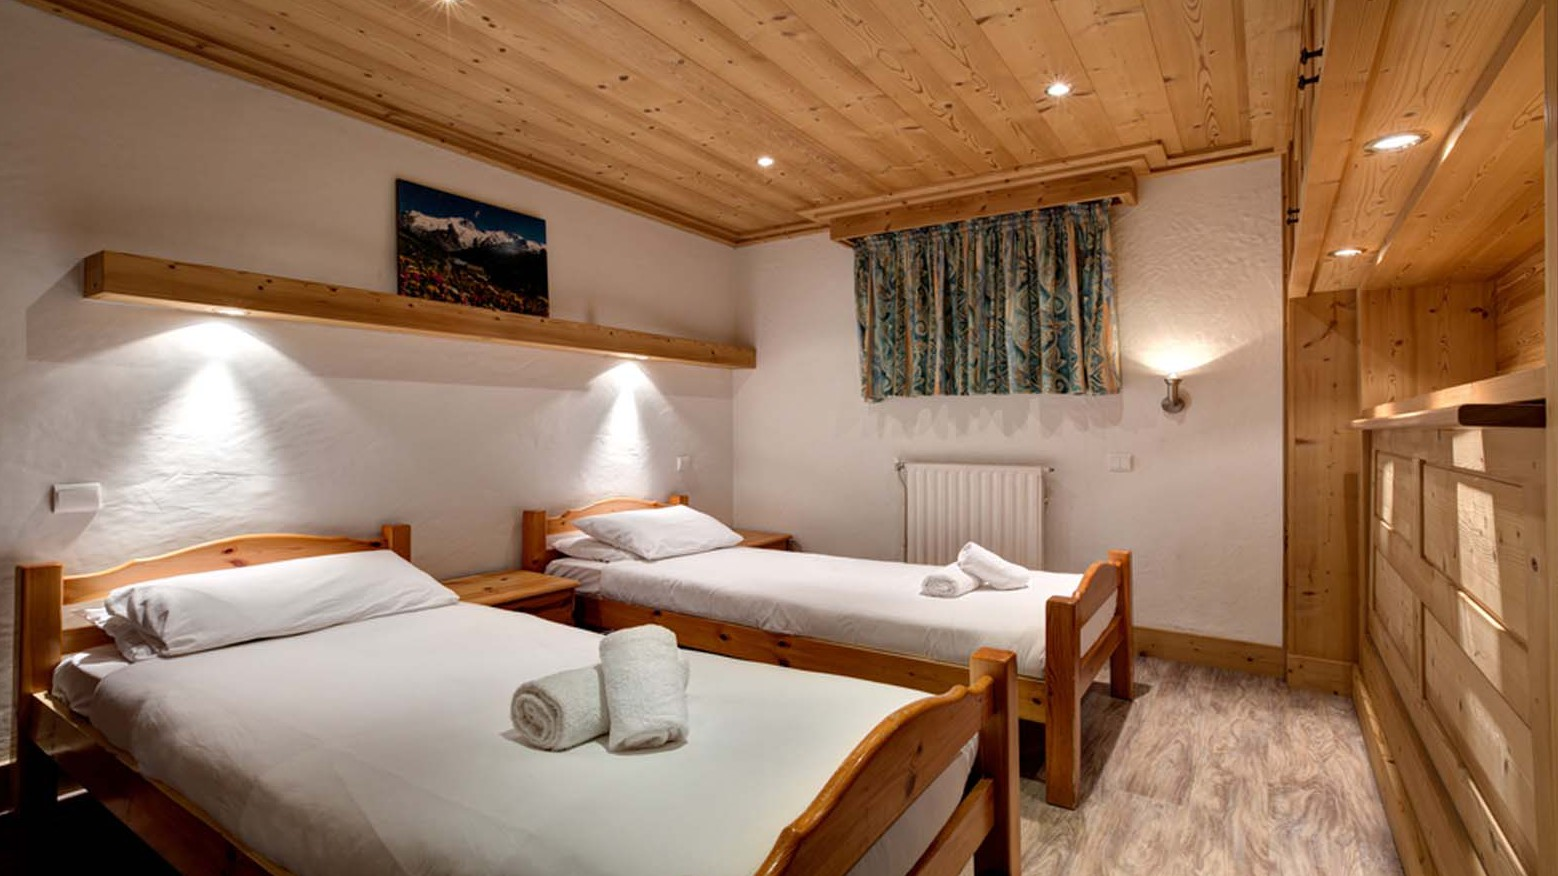 Bedroom, Chalet Andre - ski chalet in Meribel, France